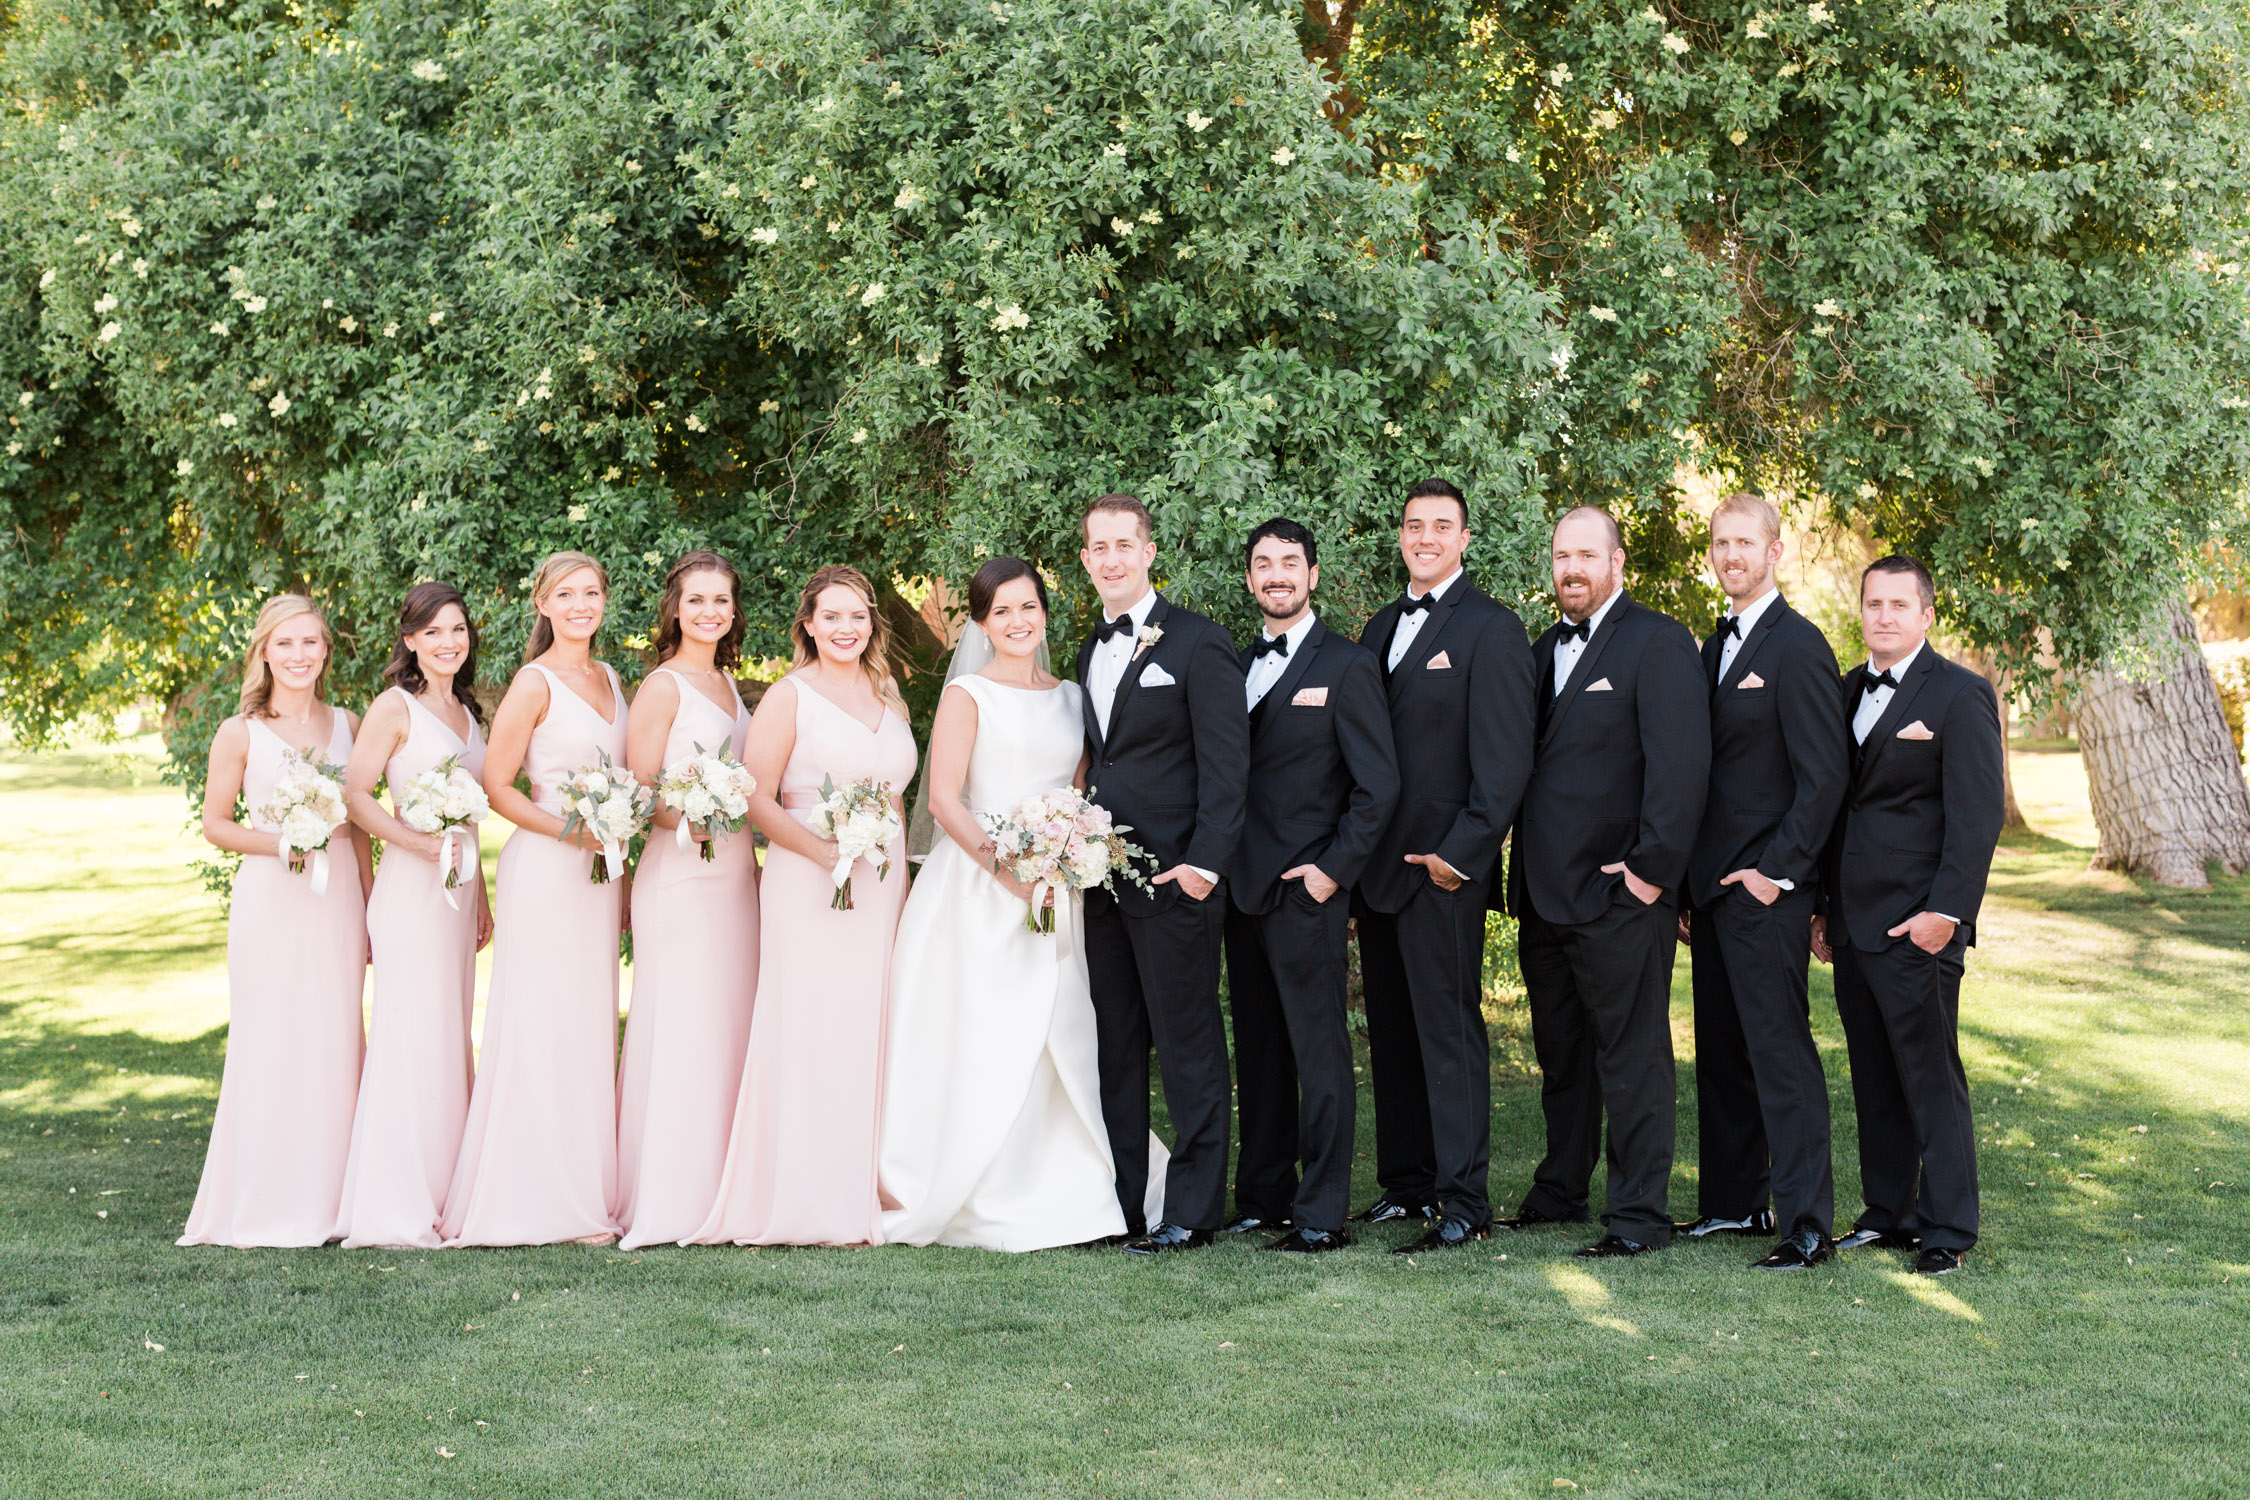 Wedding Party with bride & groom at the gorgeous green Tubac Golf Resort in Tubac, Arizona. Captured by best Tucson wedding photographers, Betsy & John